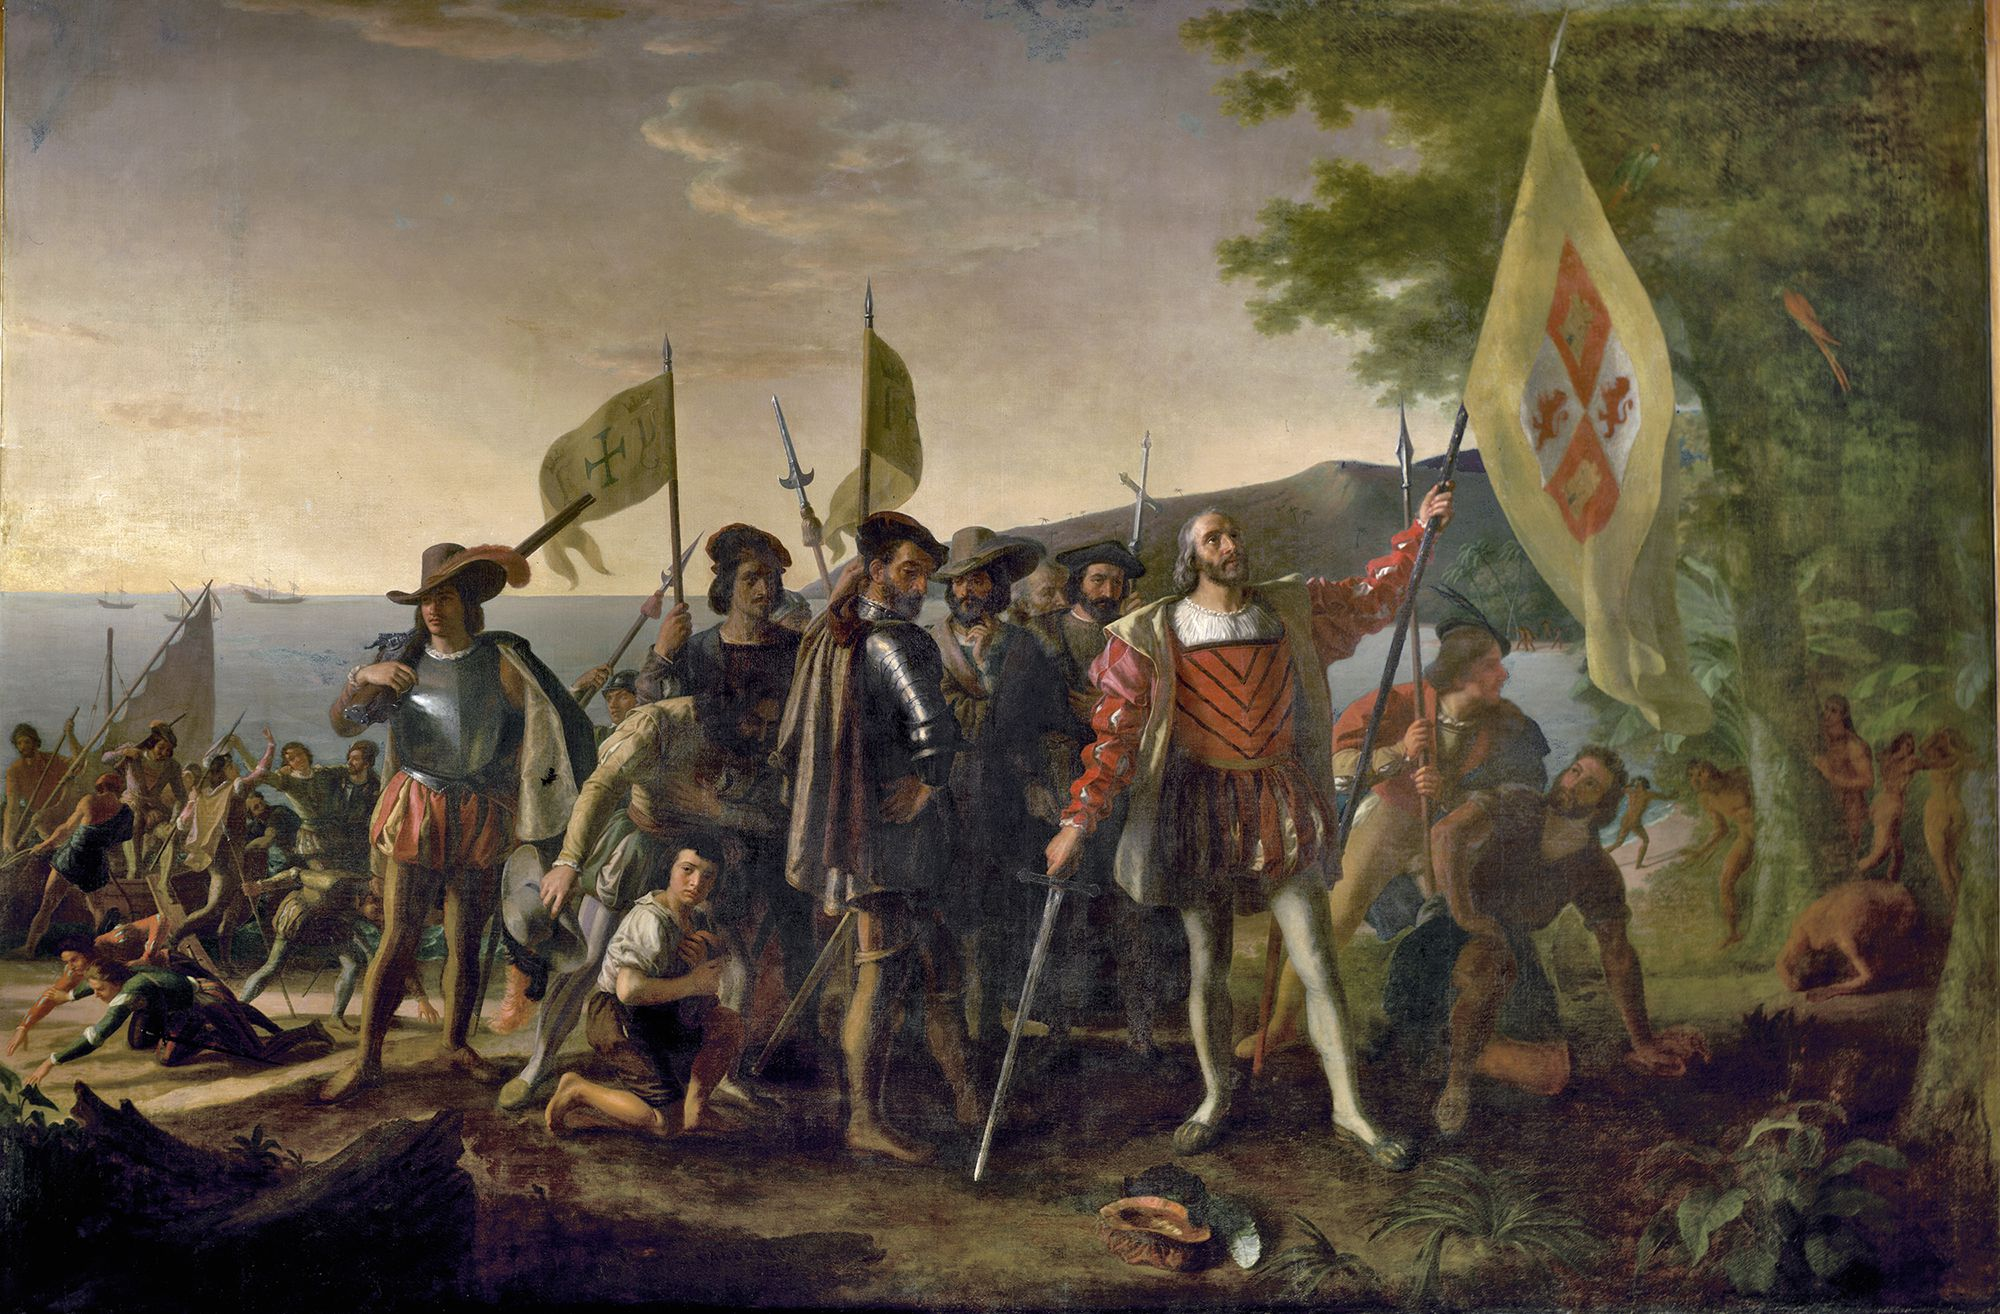 christopher columbus hero or villain  painting of christopher columbus by john vanderlyn